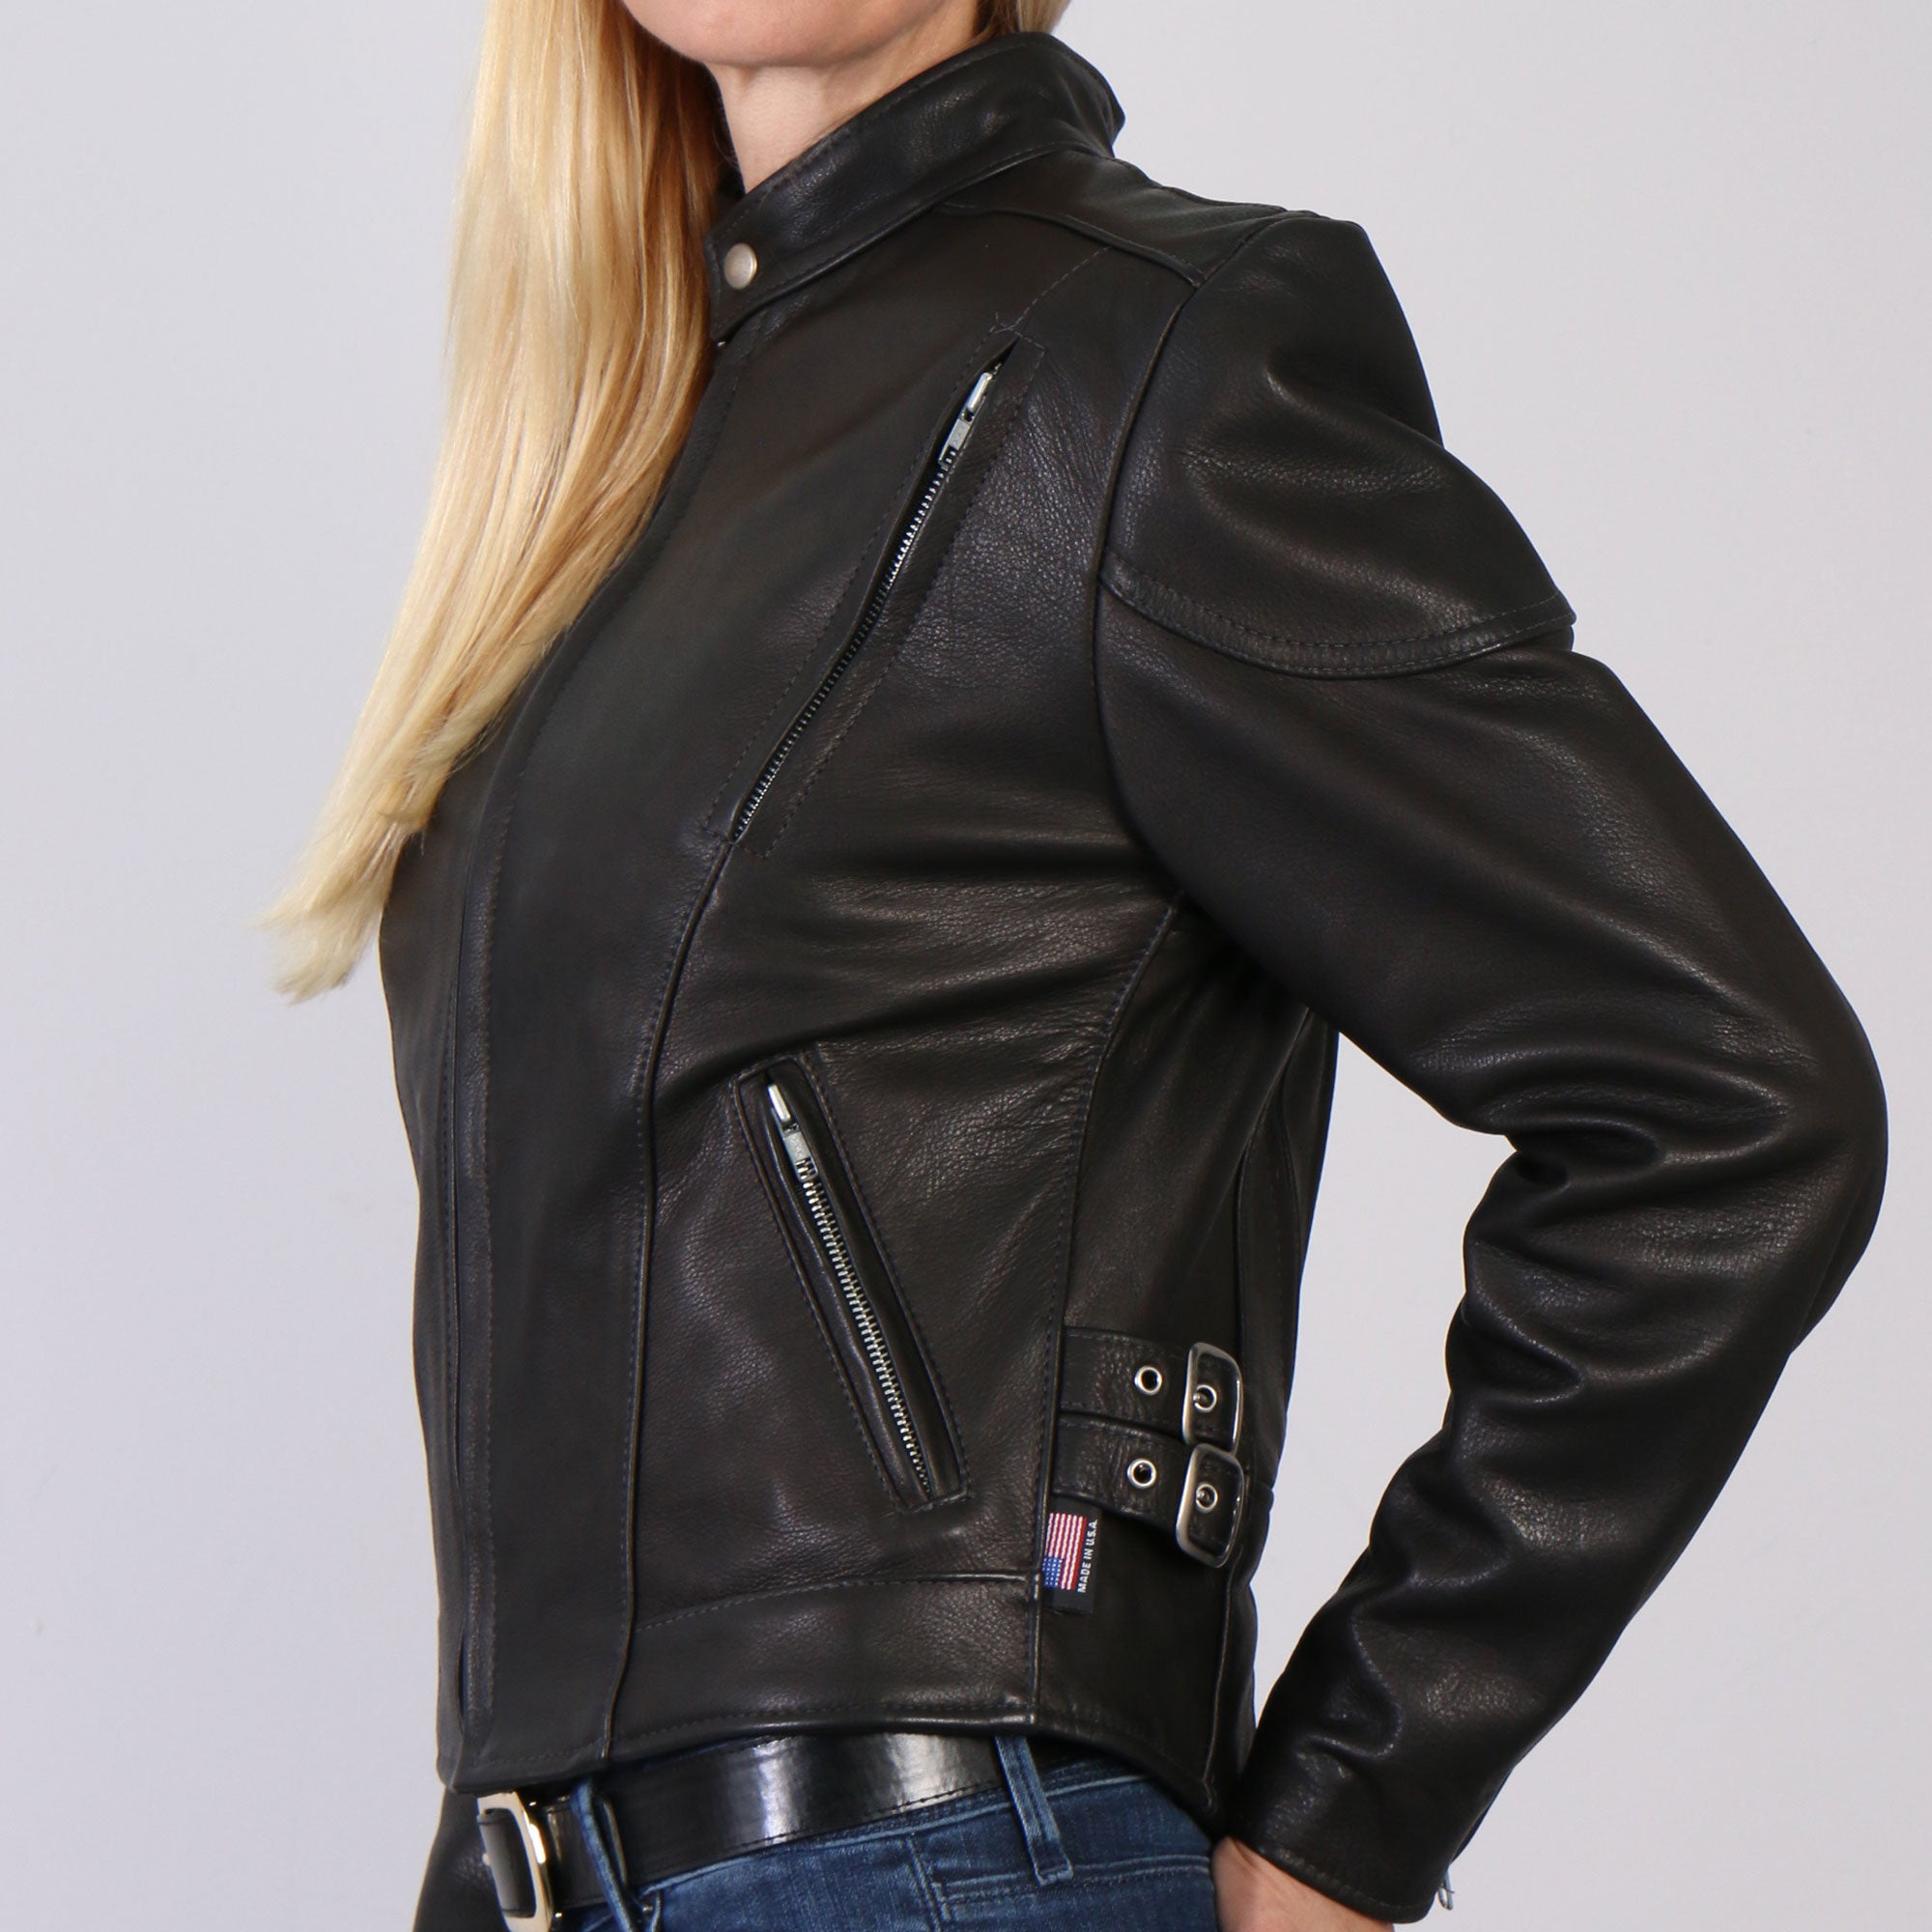 Hot Leathers USA MADE Ladies Vented Leather Jacket